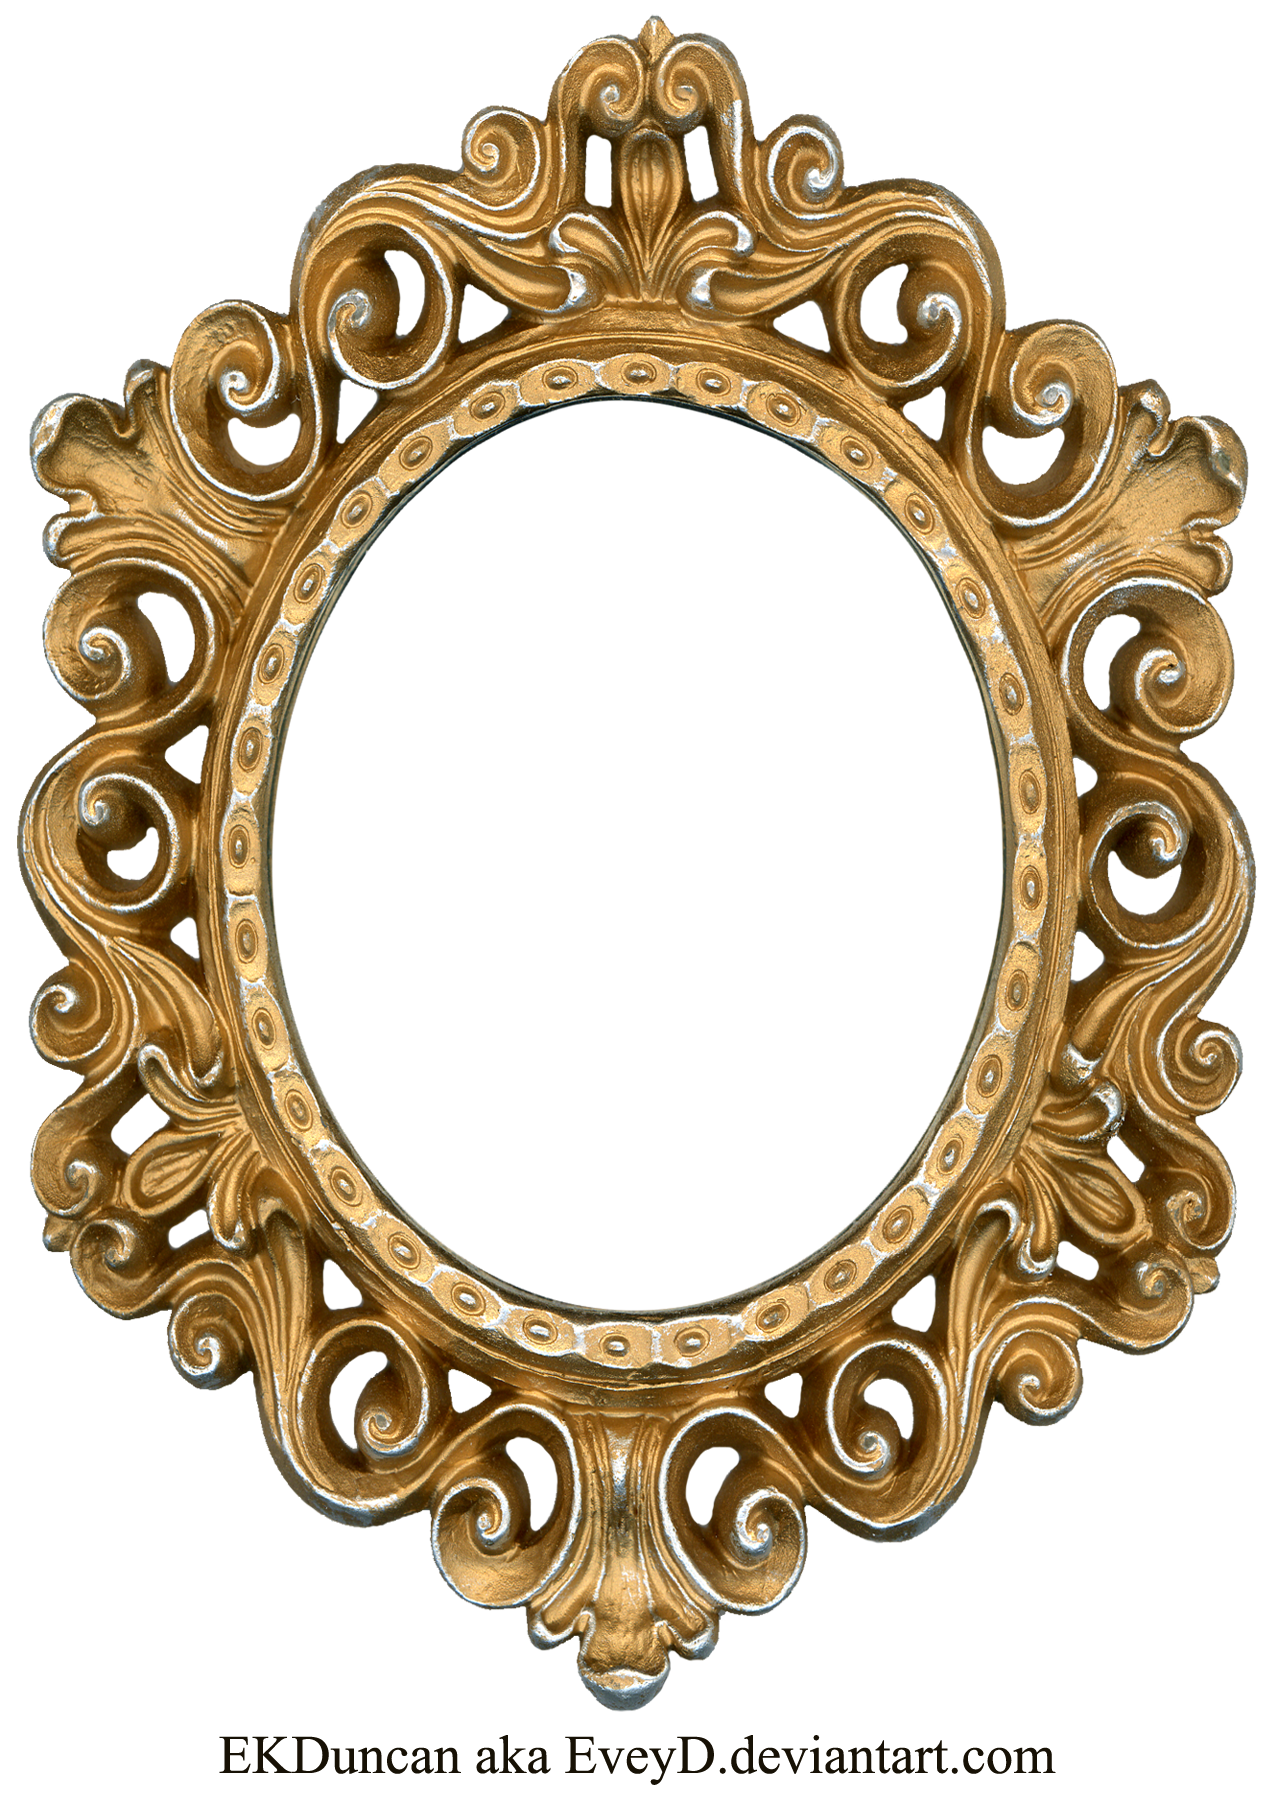 b4e8fac0a74 vintage gold and silver frame   oval by eveyd-d4fmeua.png 1